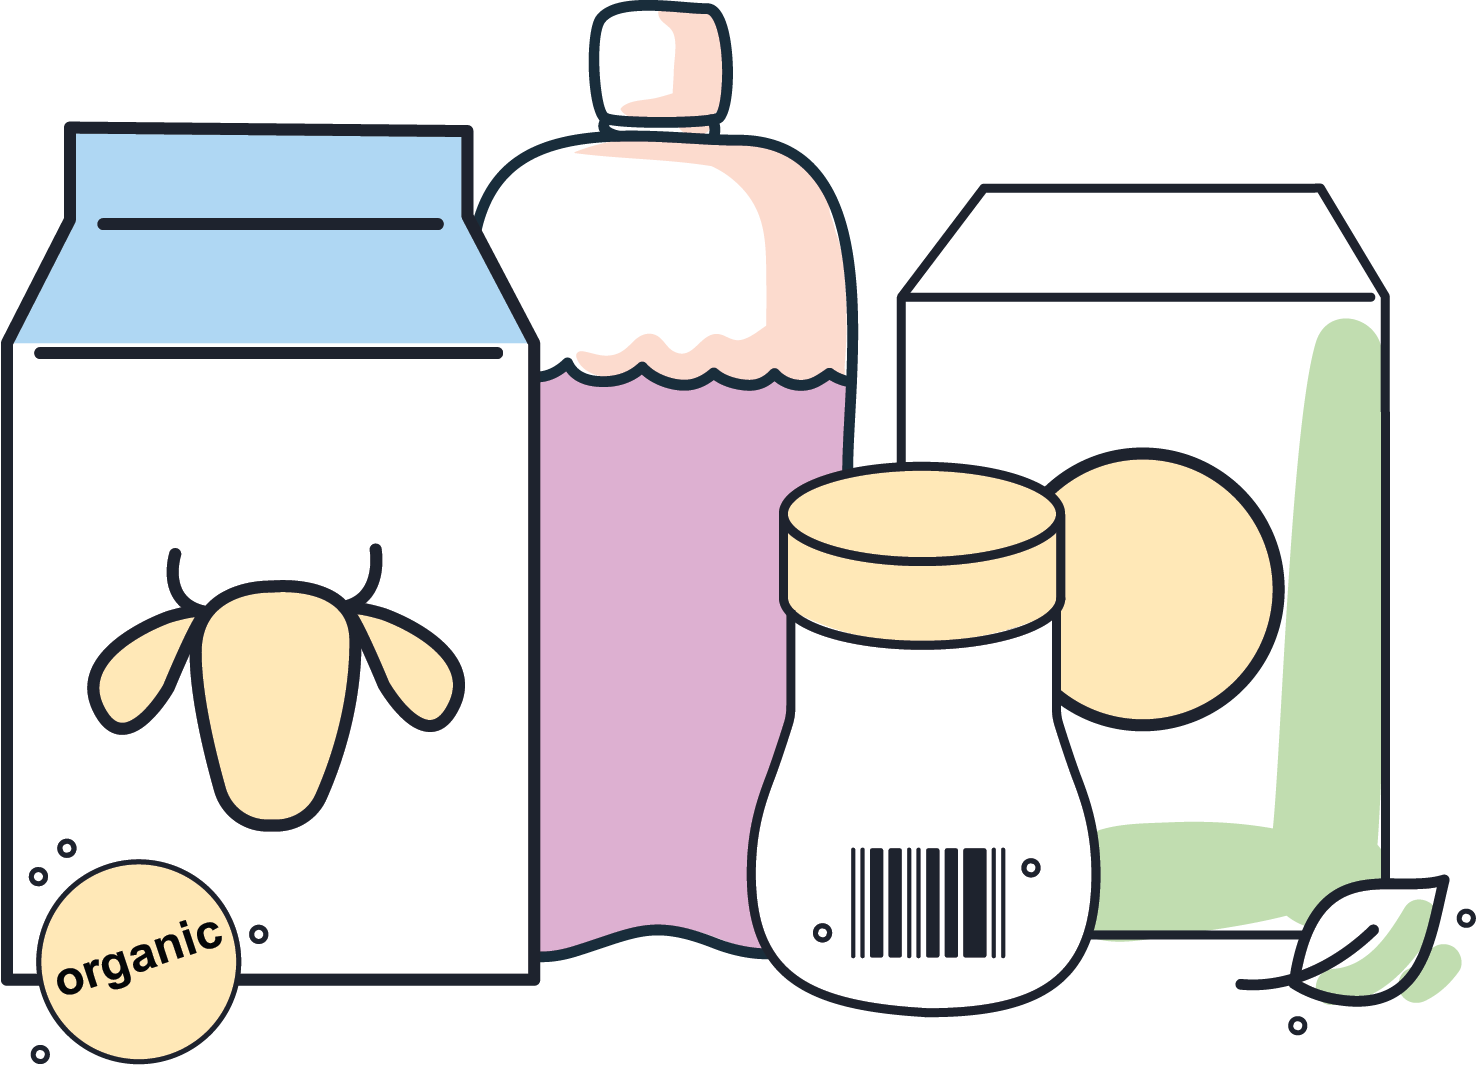 Illustration of different packaged goods